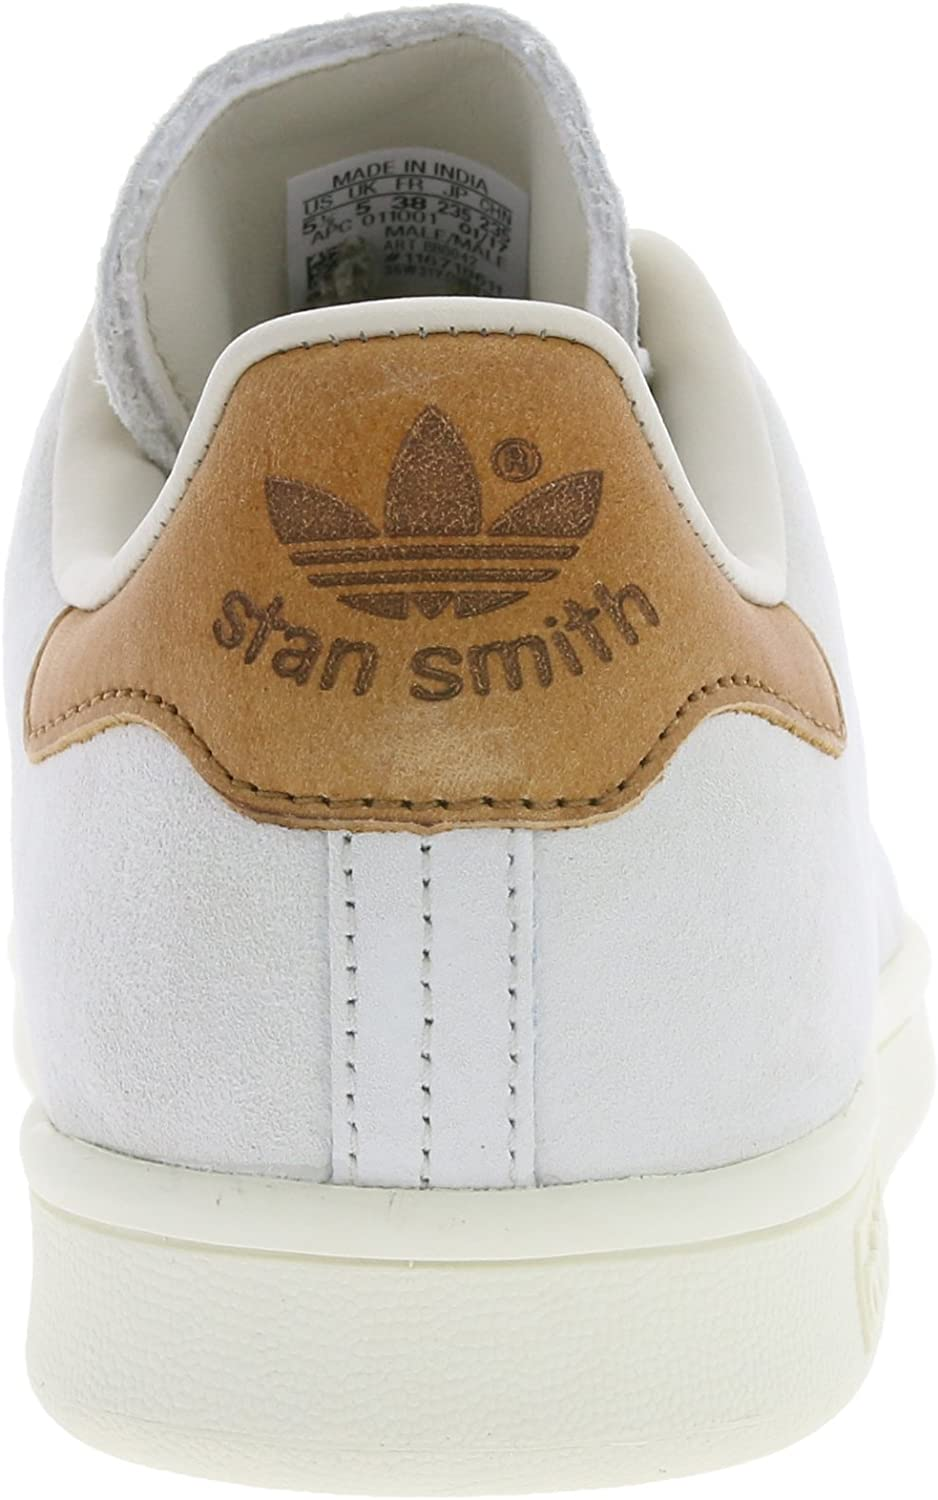 adidas pour homme stan smith bb0042 baskets